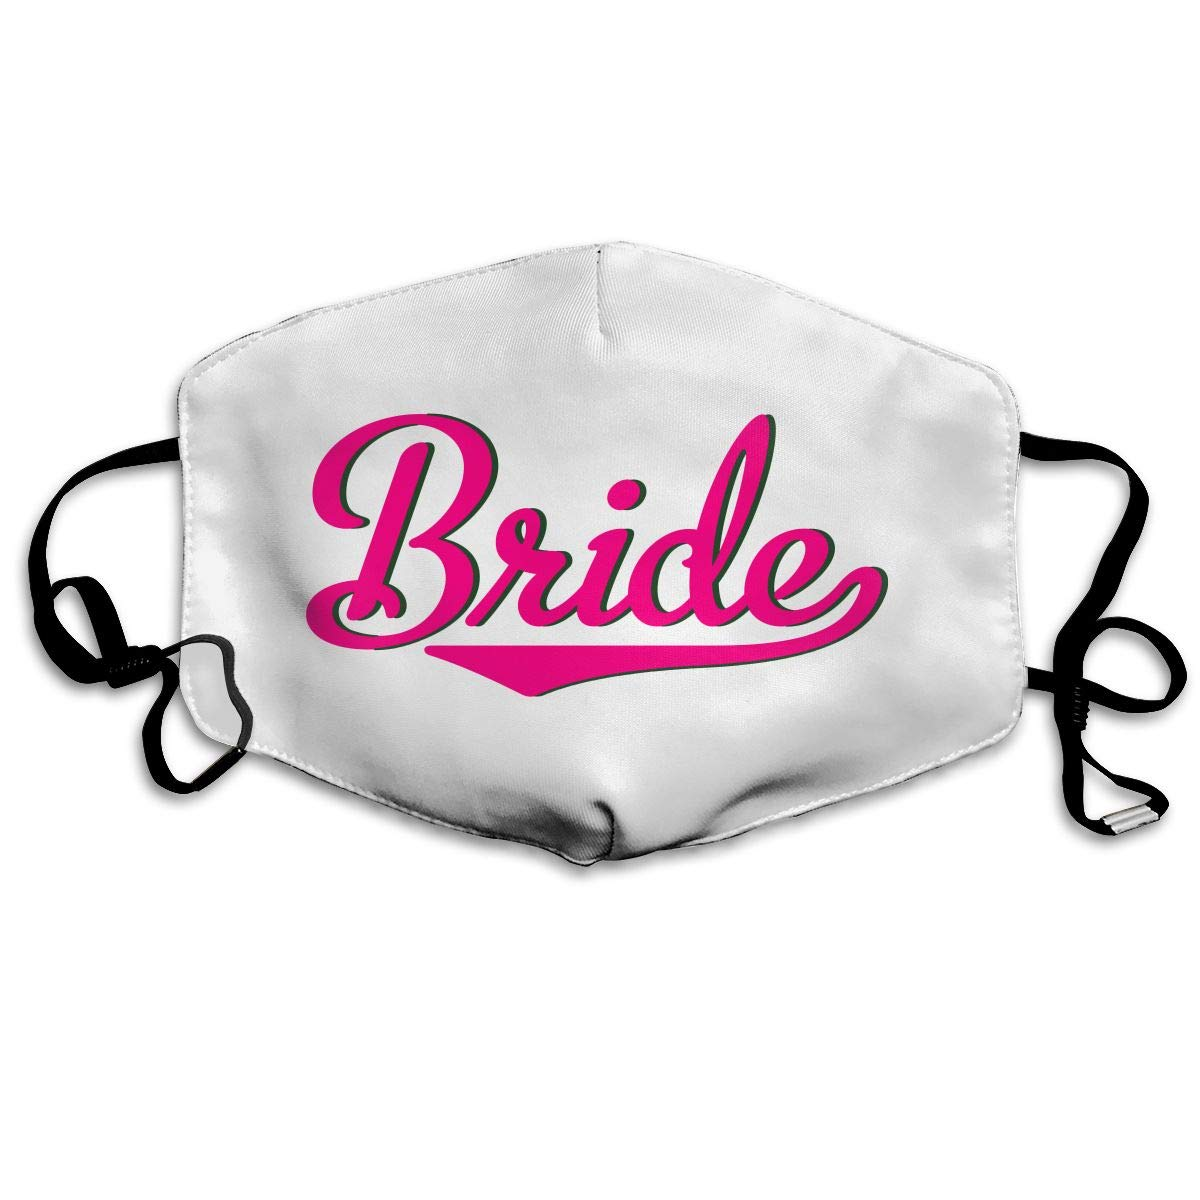 Mouth Mask Bride Print Masks - Breathable Adjustable Windproof Mouth-Muffle, Camping Running For Women And Men